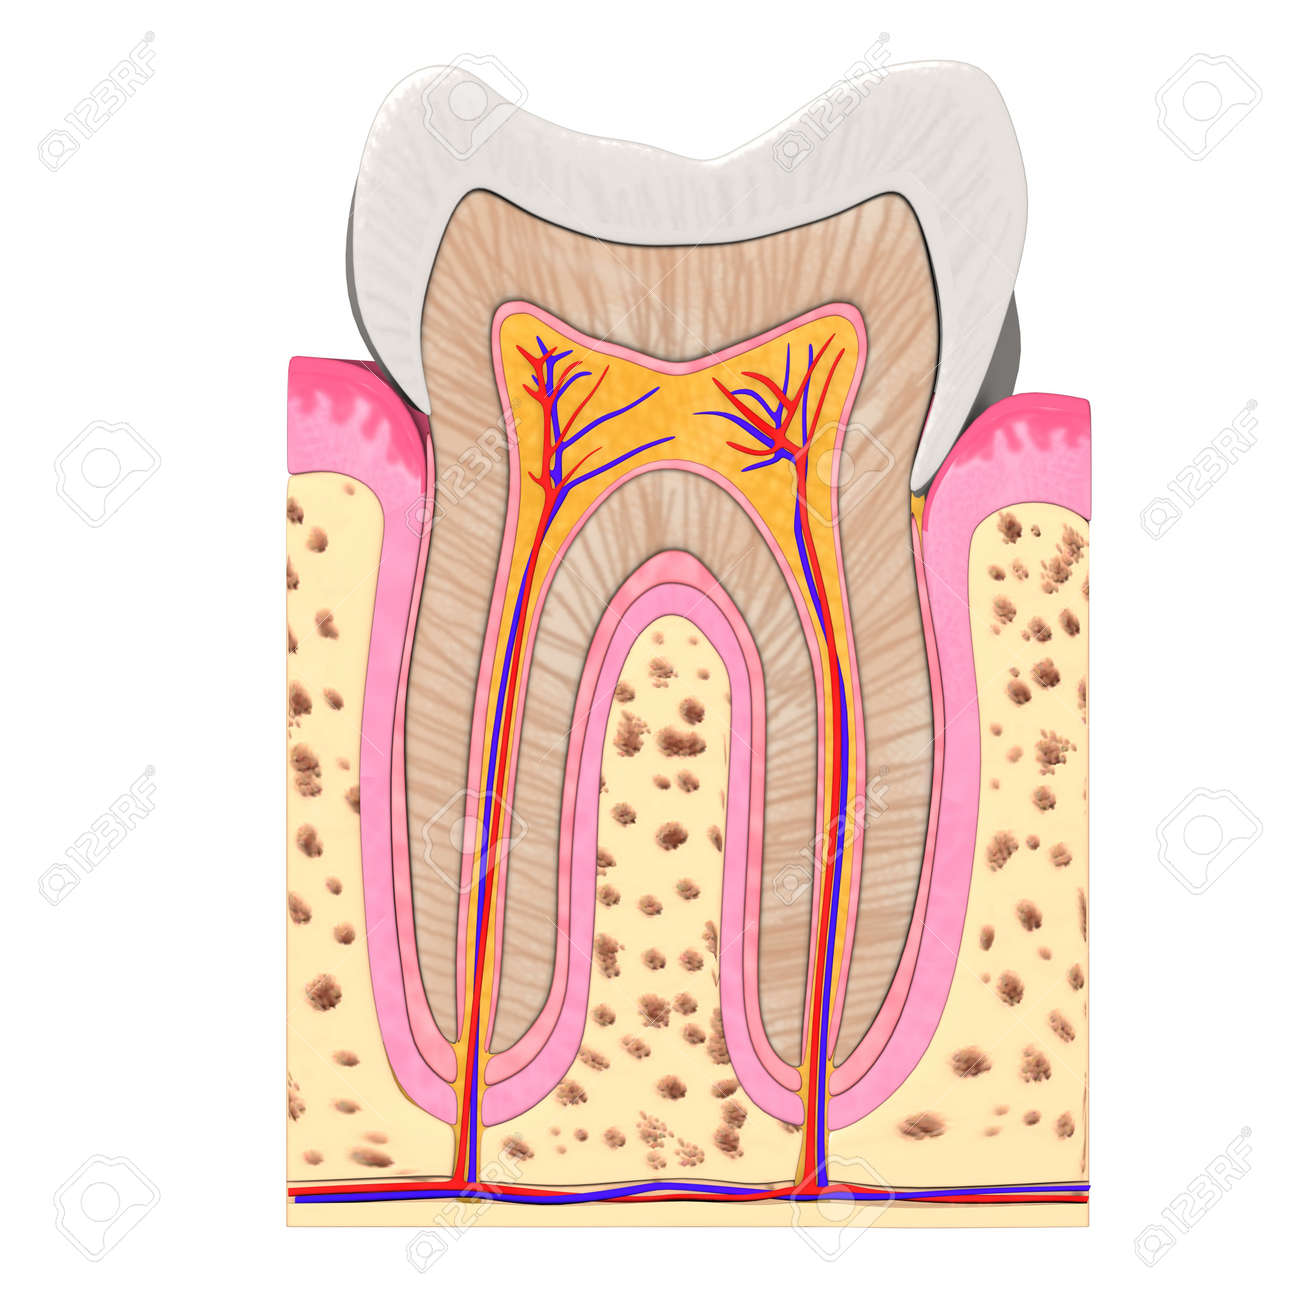 3d Render Of Teeth Anatomy Stock Photo Picture And Royalty Free